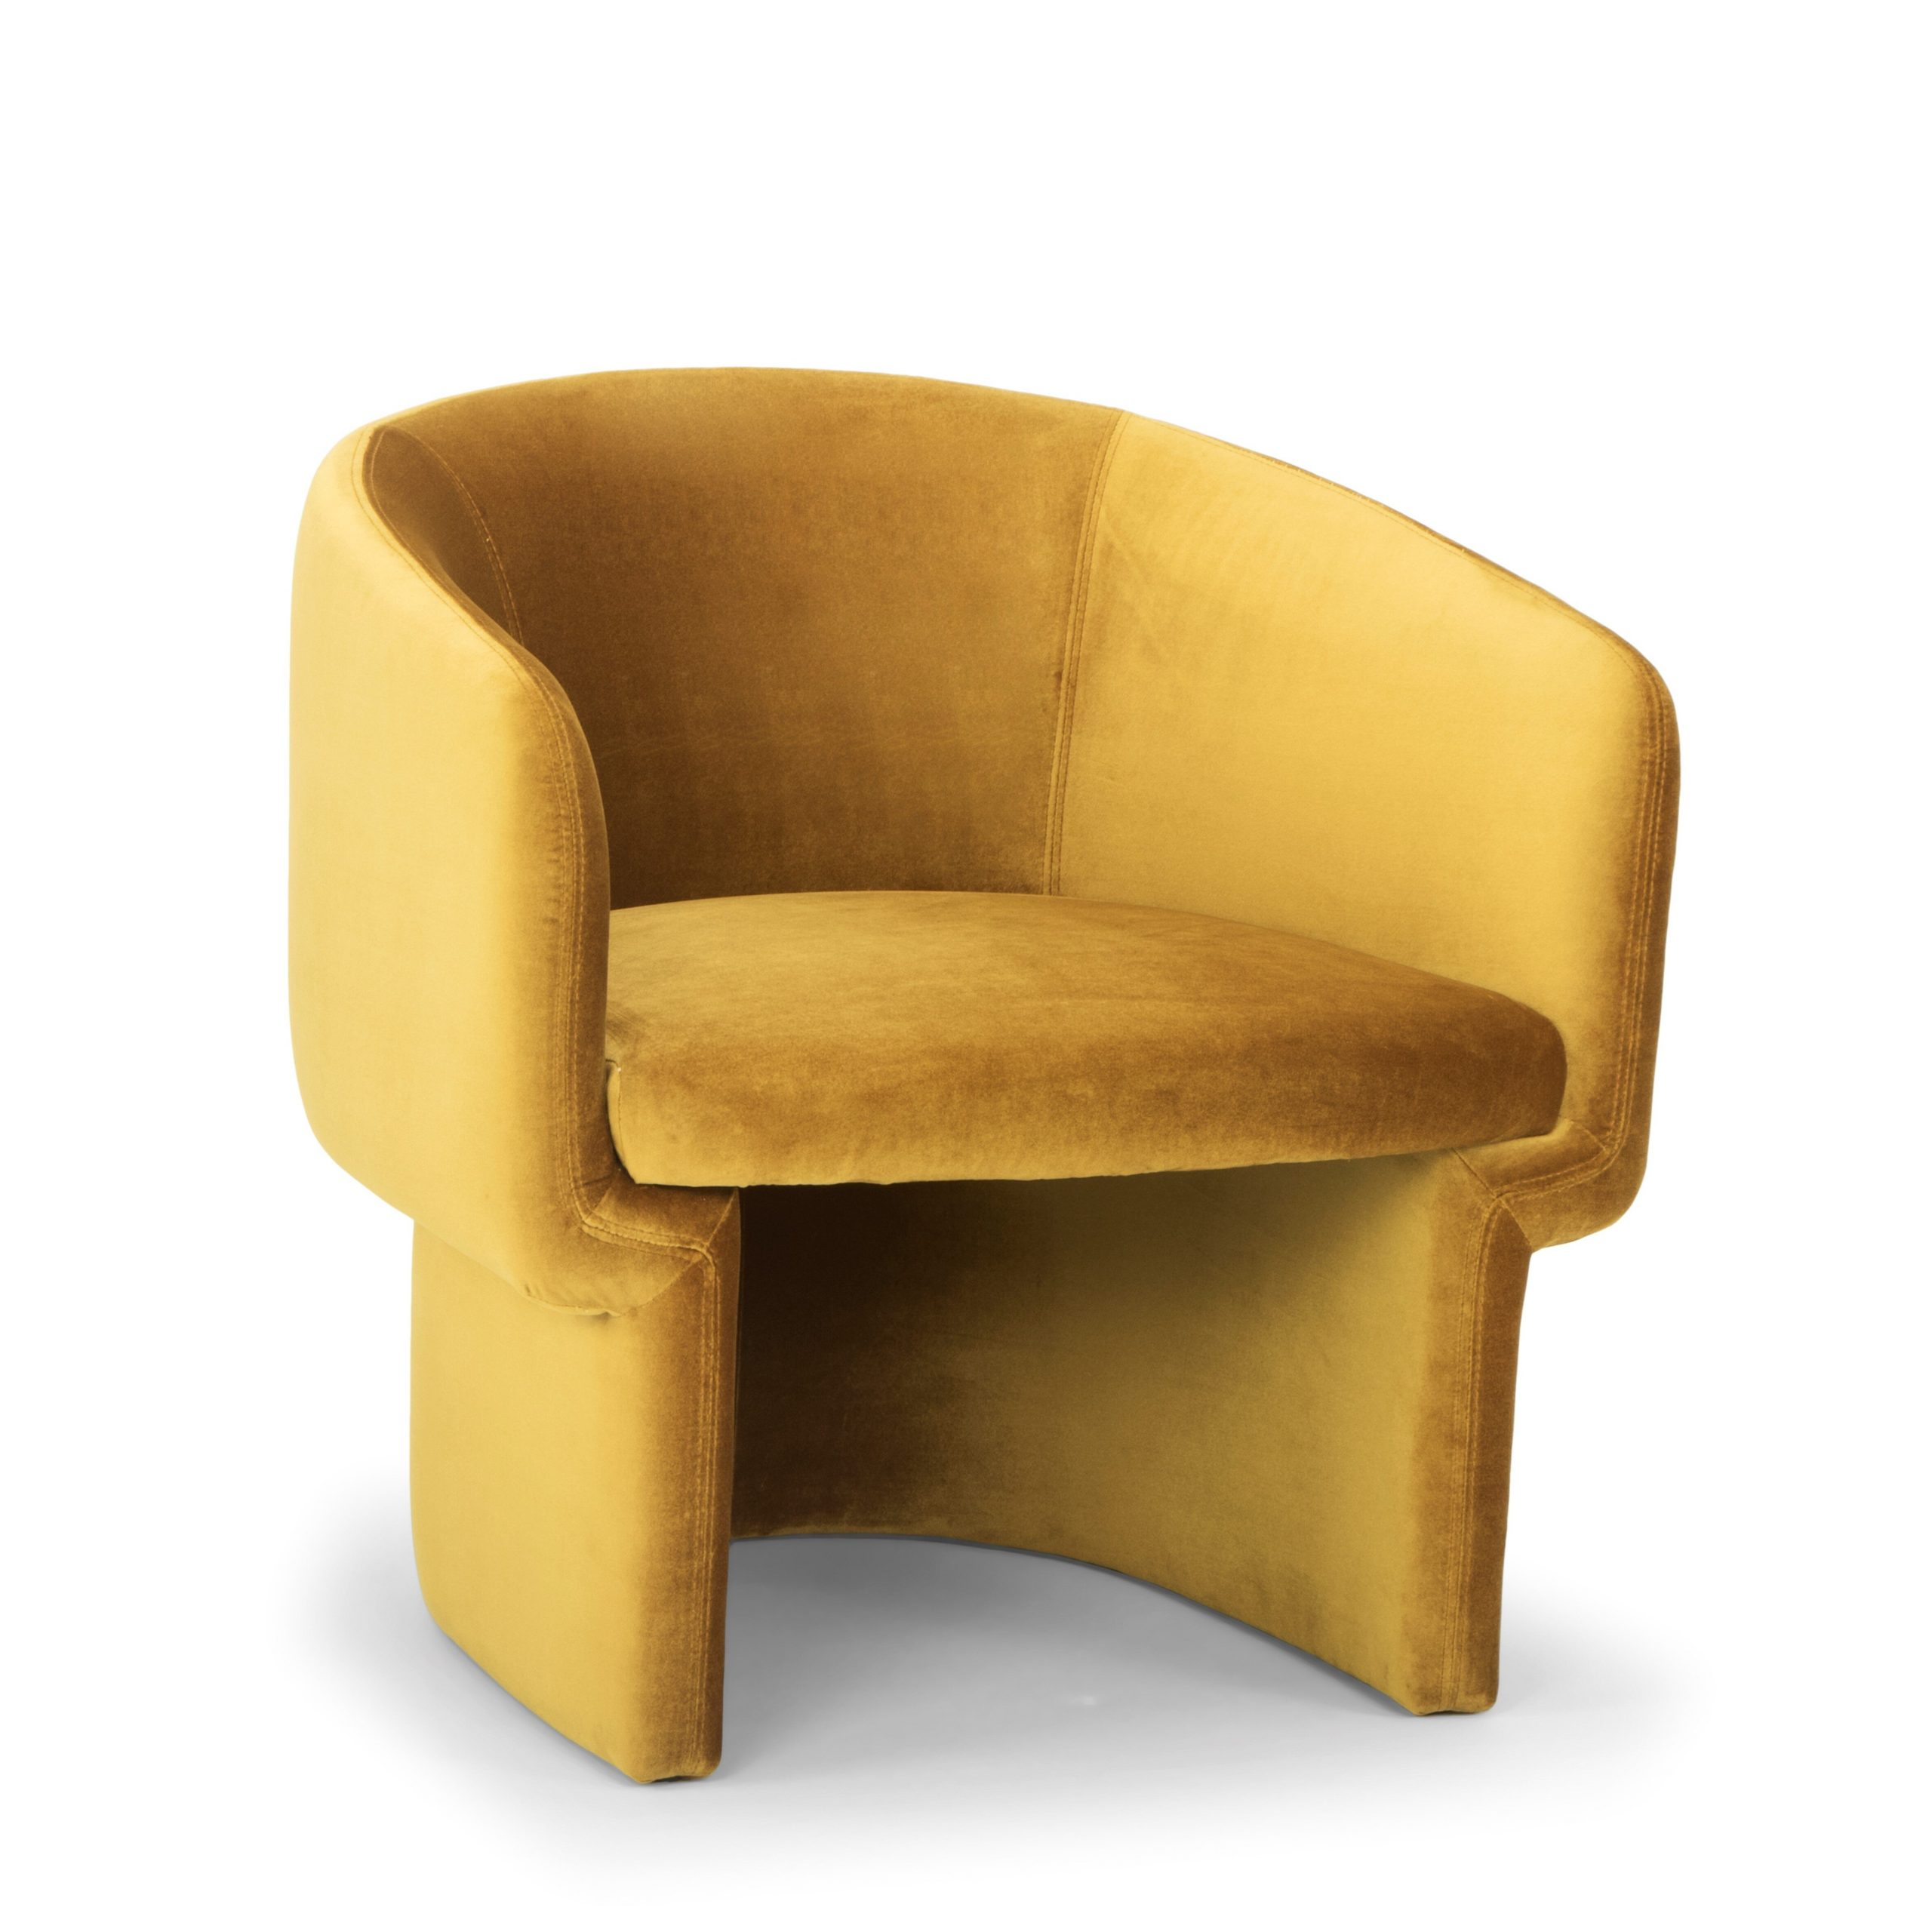 Barrel Yellow Accent Chairs You'Ll Love In 2021 | Wayfair Intended For Dorcaster Barrel Chairs (View 9 of 15)